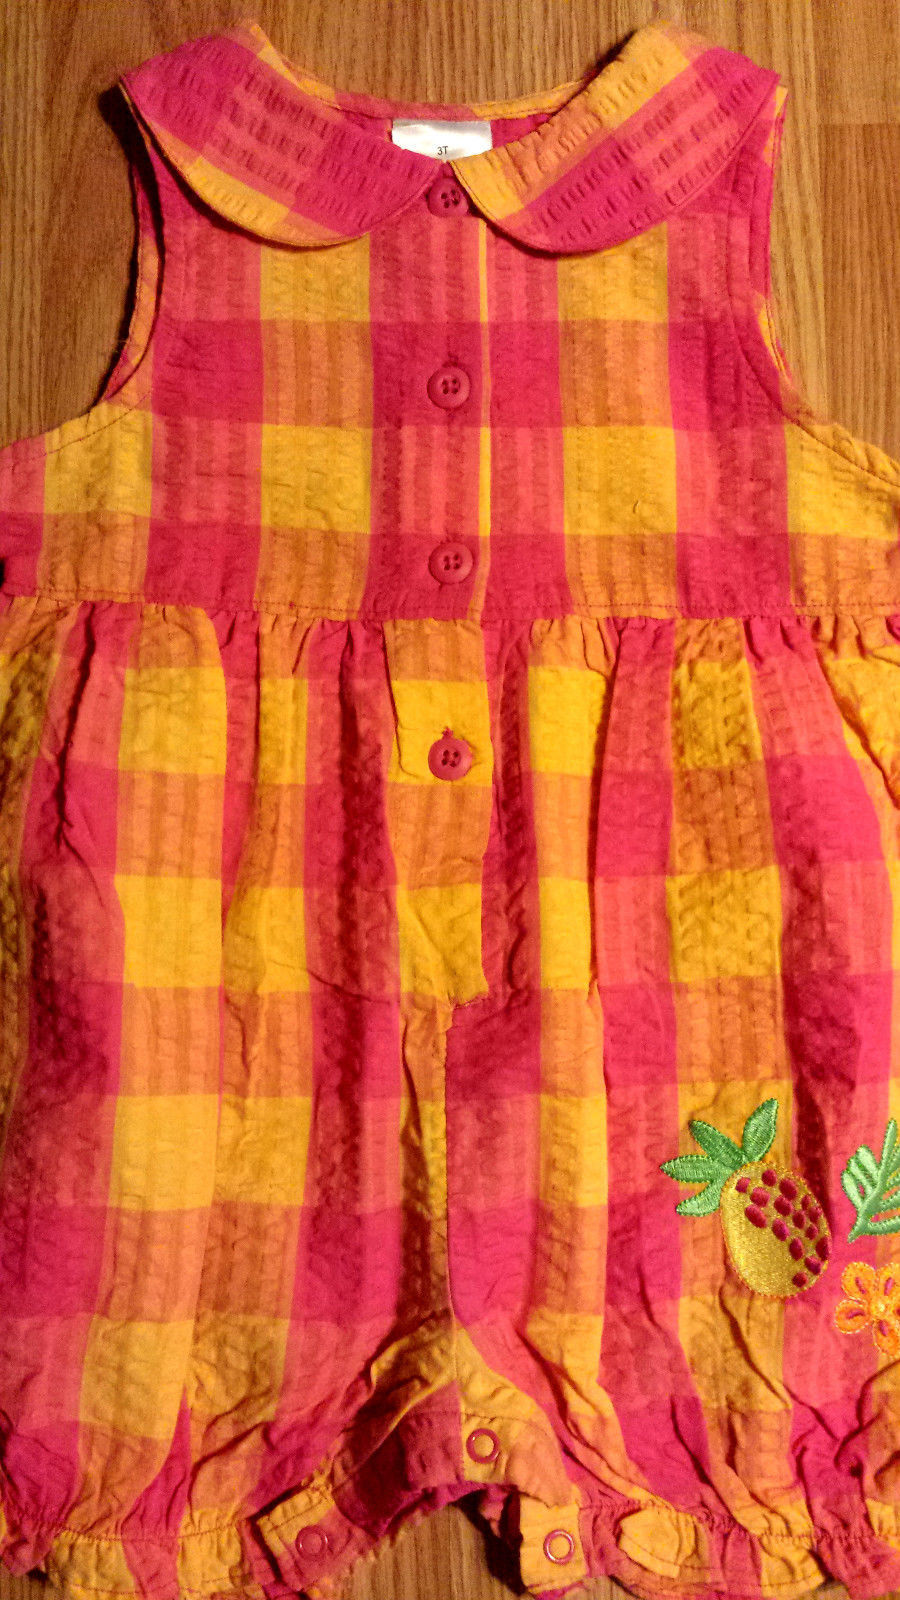 NWOT Girl's Size 4T Years One Piece Pink/ Orange Carter's Pinapple Shorts Romper